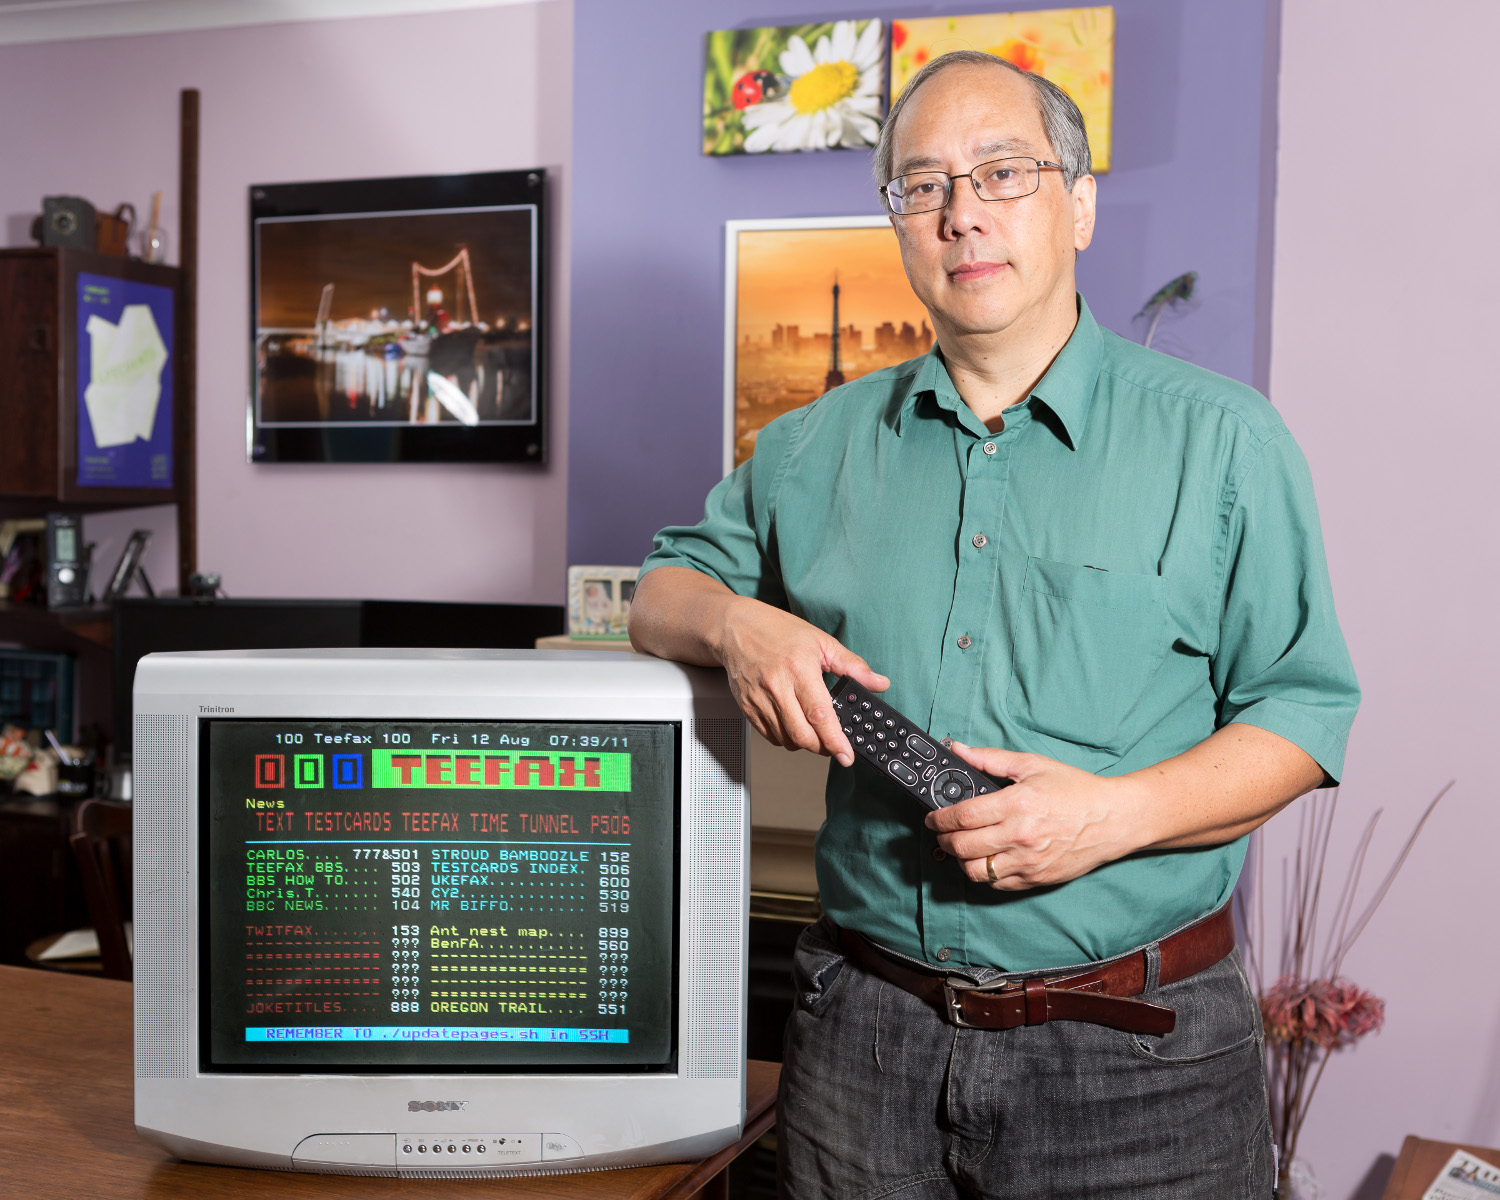 Peter Kwan is a former Teletext engineer and the creator of this project